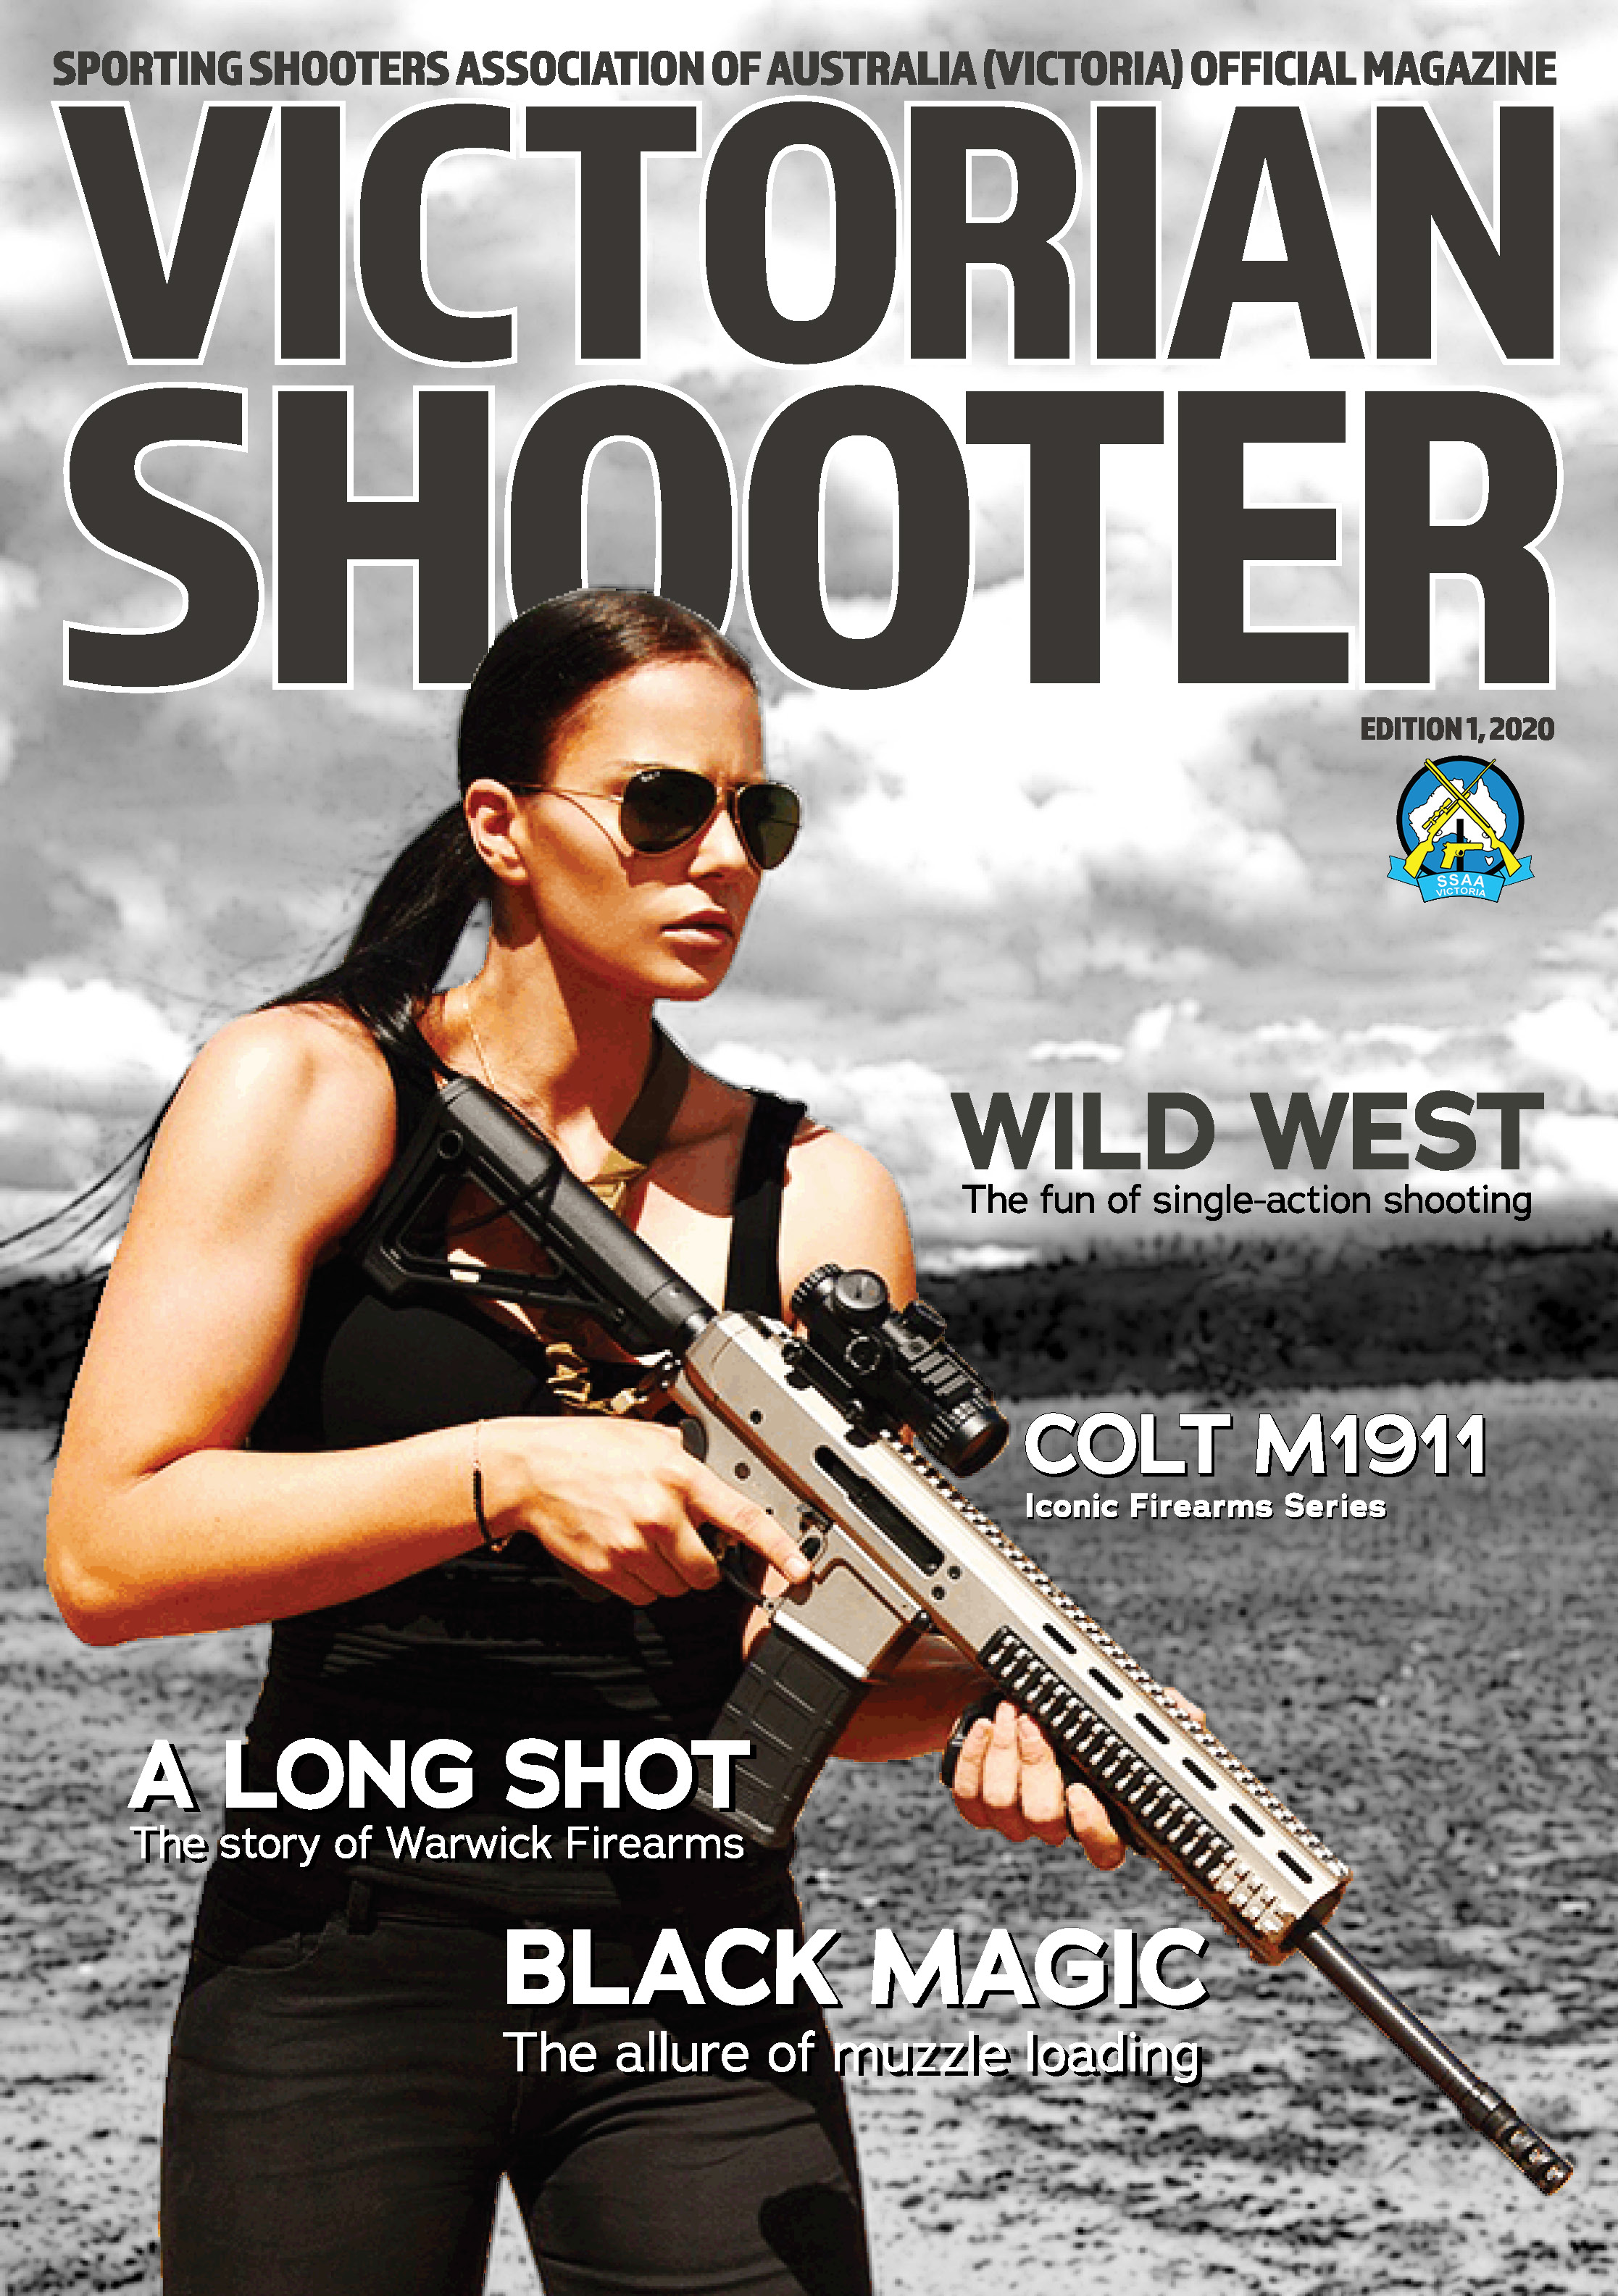 Edition 1 of Victorian Shooter is now online